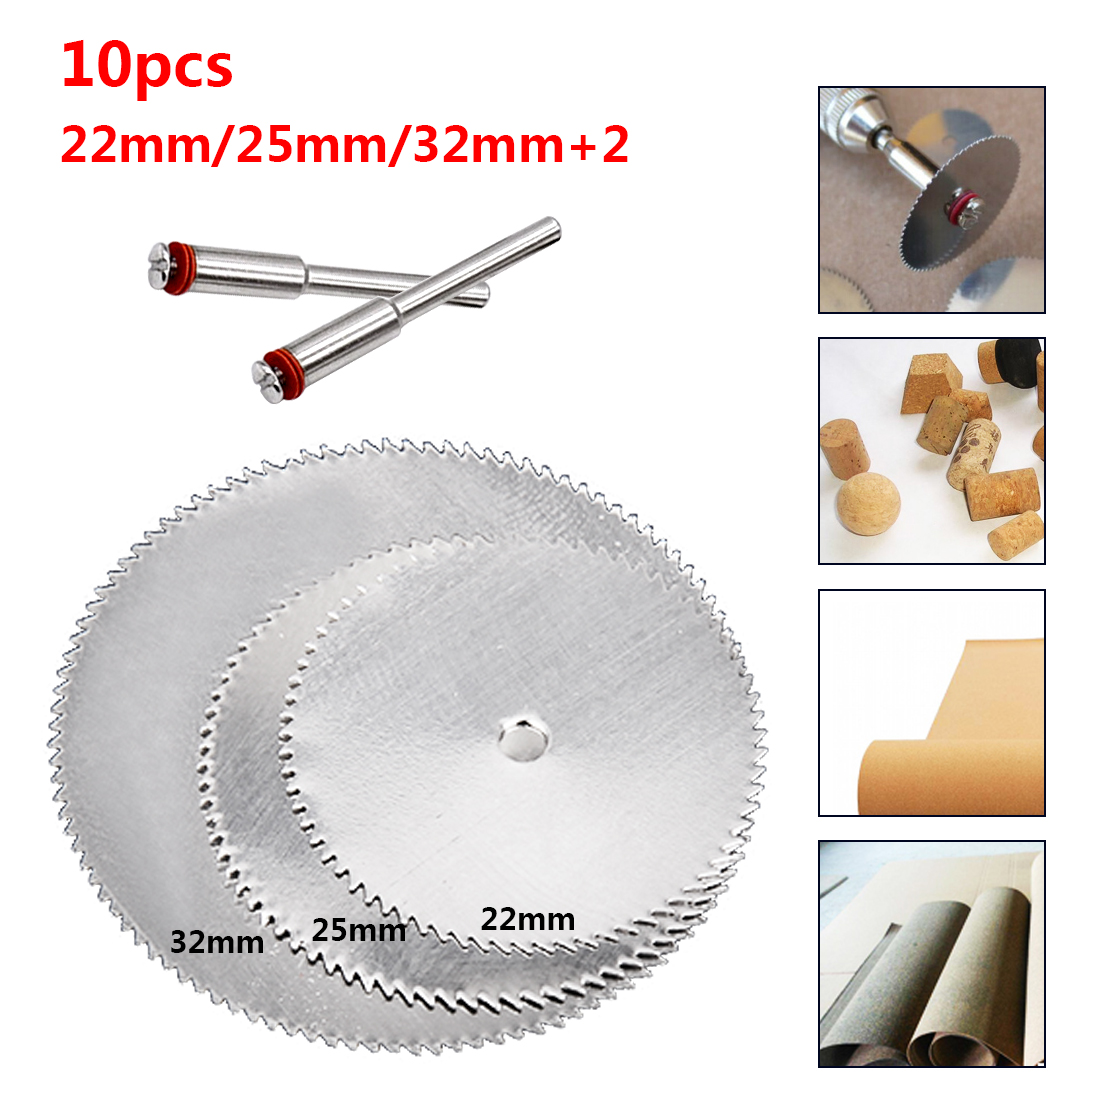 Saw Blade For Tools Dremel Rotary Tool Cutting Discs Dremel 10Pcs 22 25 32mm Power Tool Electric Drill Accessories